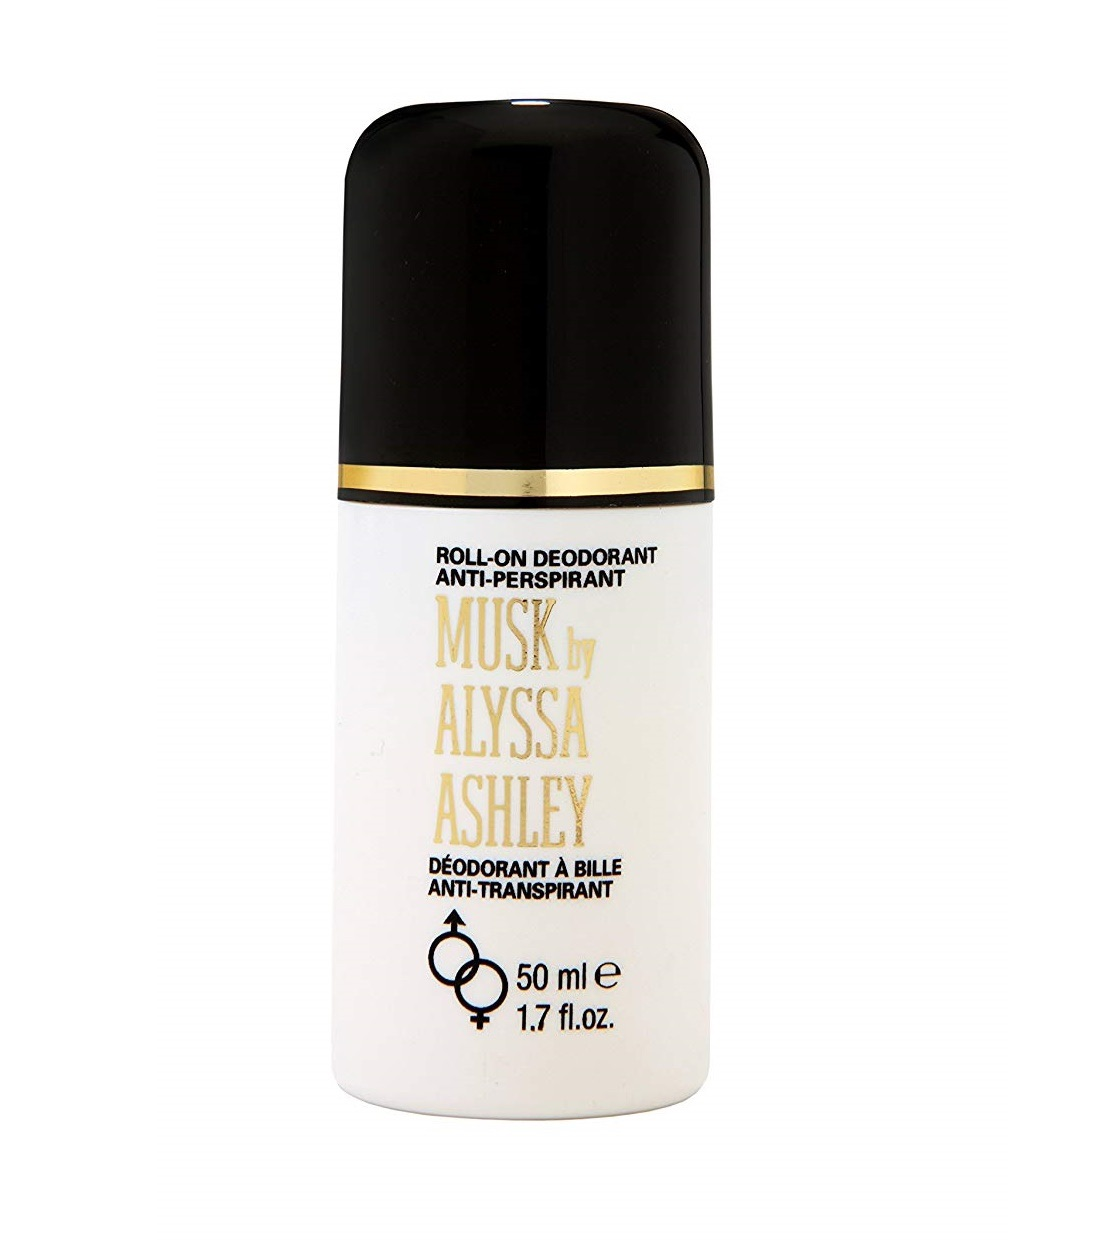 Alyssa Ashley Musk Roll-On Deodorant 50ml